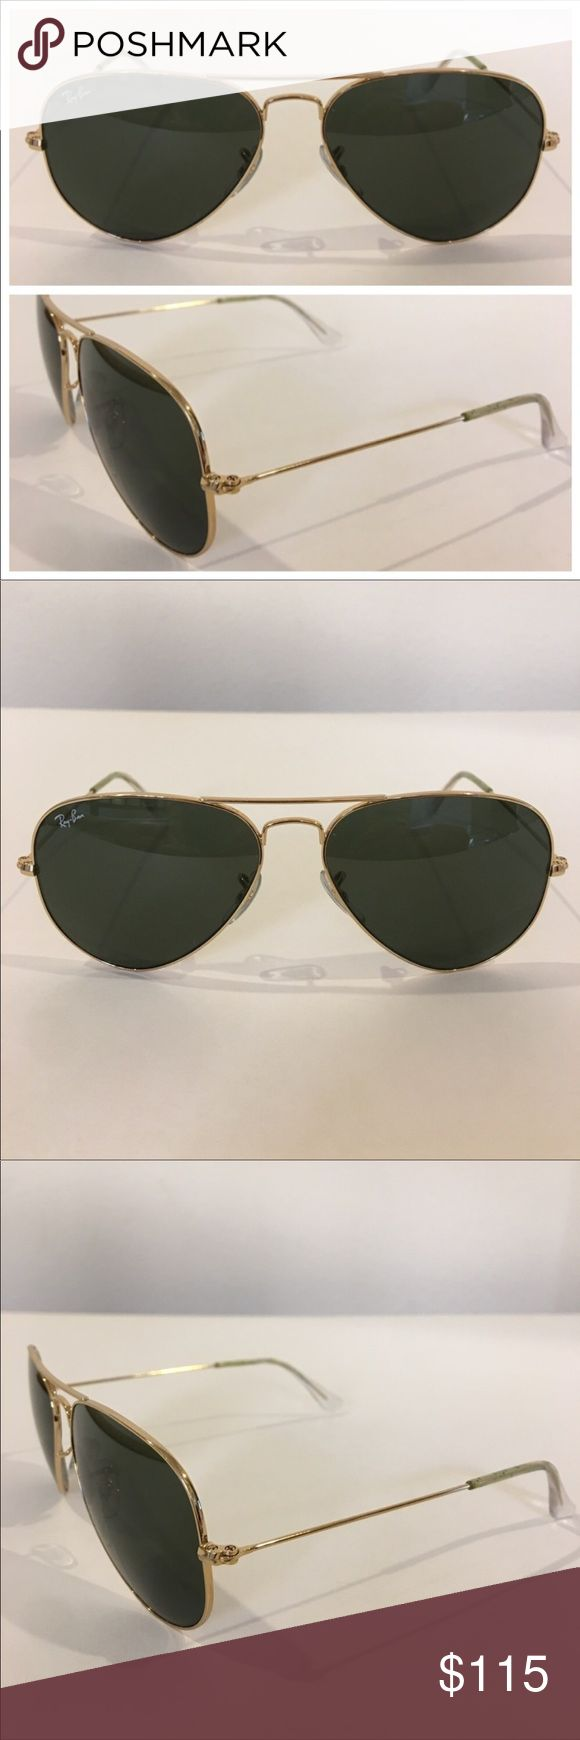 RAY BAN gold tone reflective aviator sunglasses Authentic RAY BAN sunglasses, made in Italy, gold tone metal, model RB 3025.  In preowned condition with very gentle scratches on the lens and slight discoloration on arms (see image.) Signature RB etched in